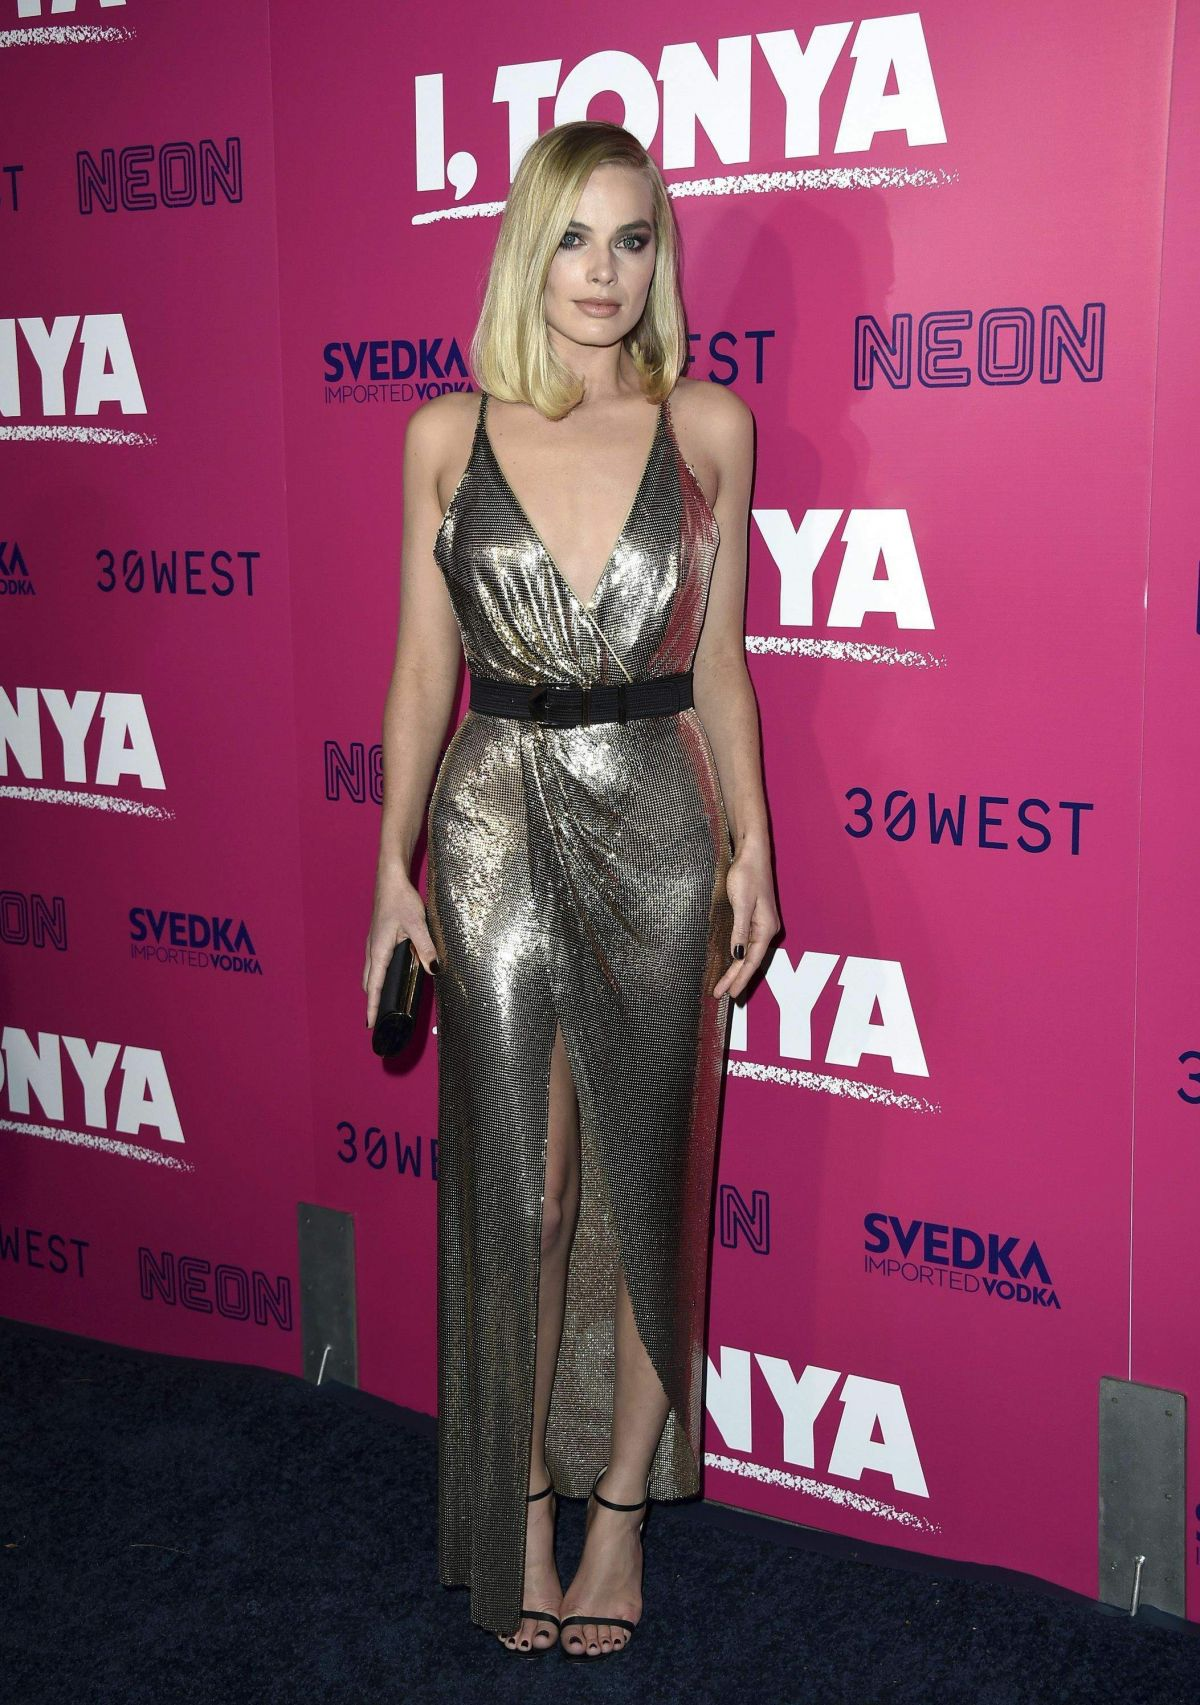 margot-robbie-at-i-tonya-premiere-in-hollywood